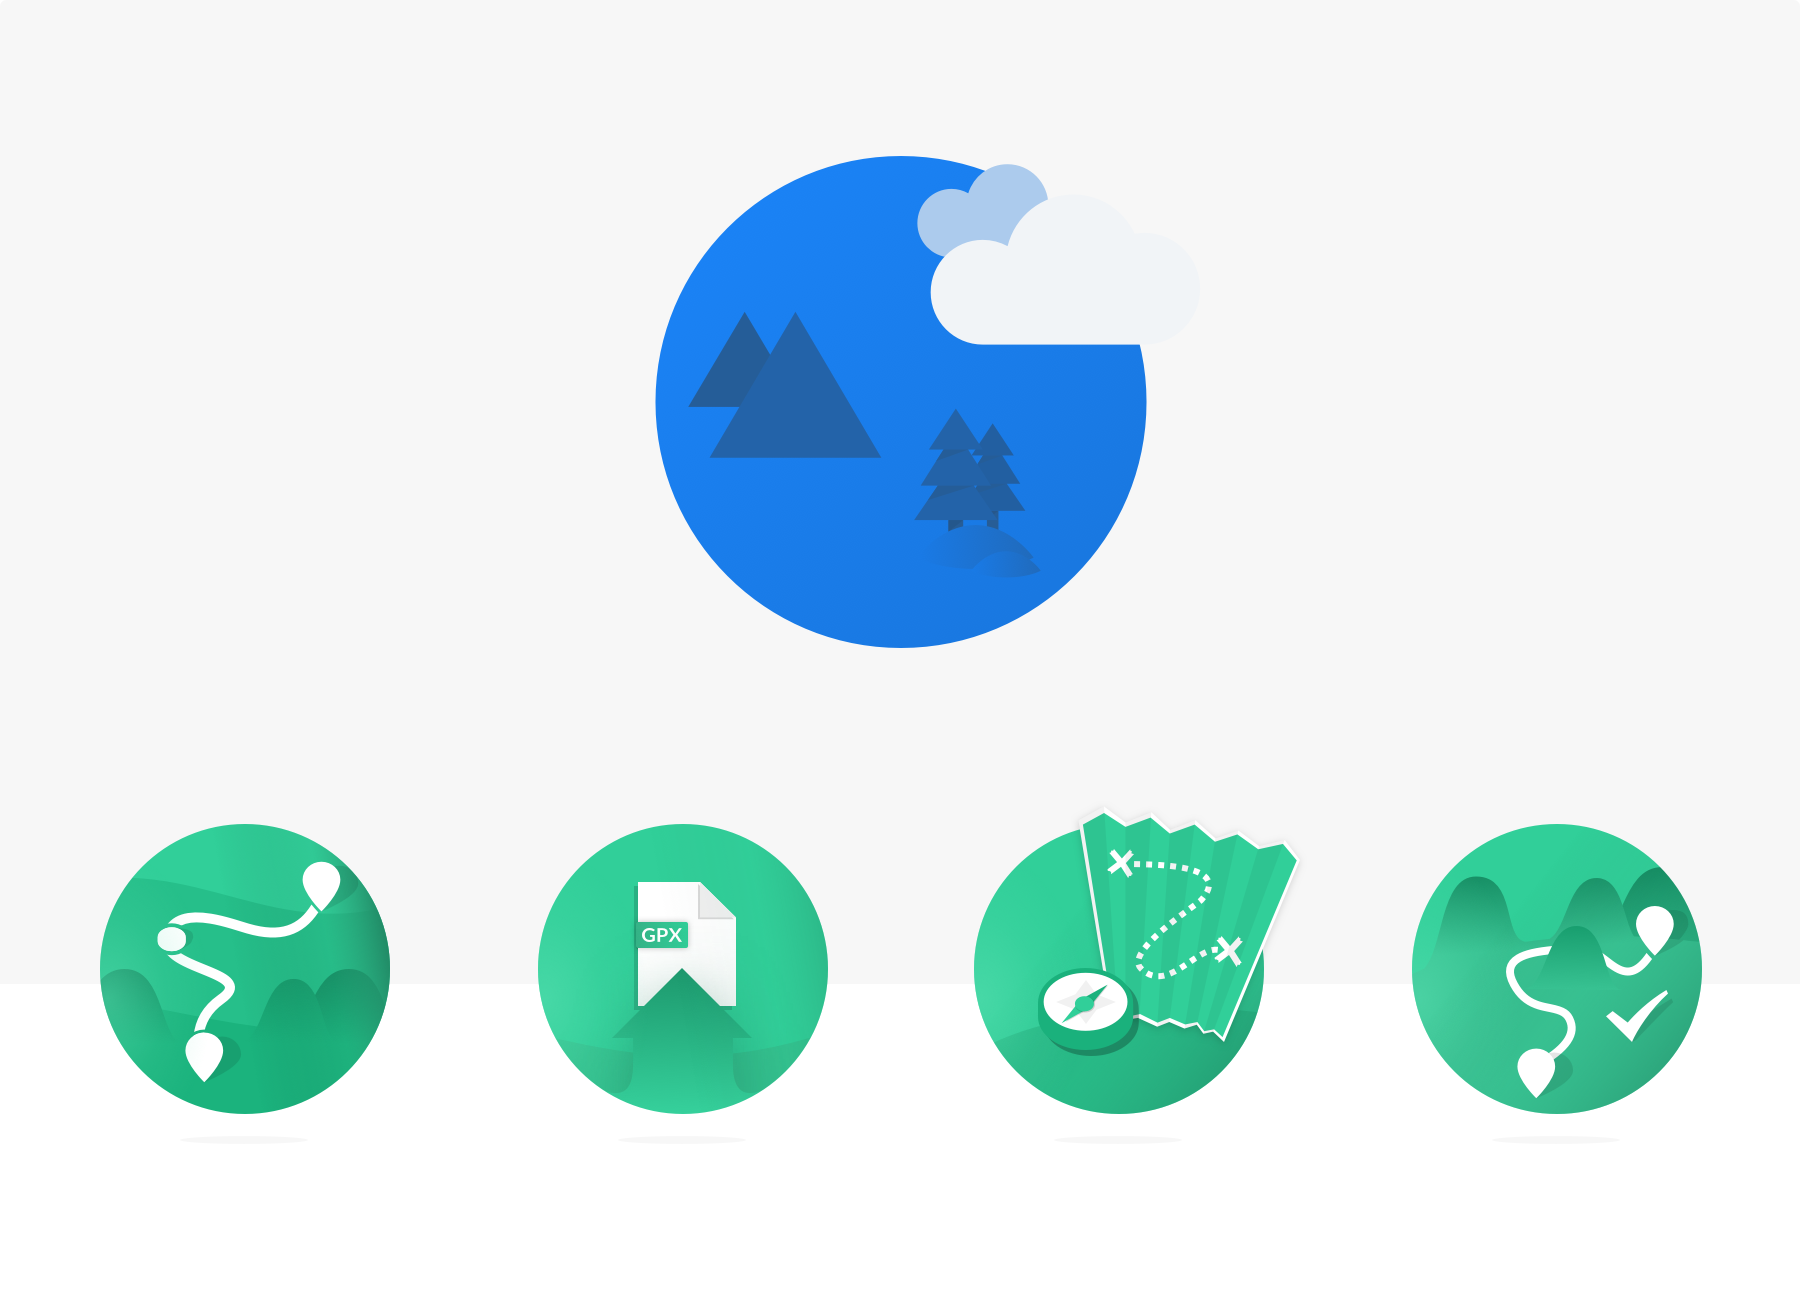 Icons for actions on the route dashboard